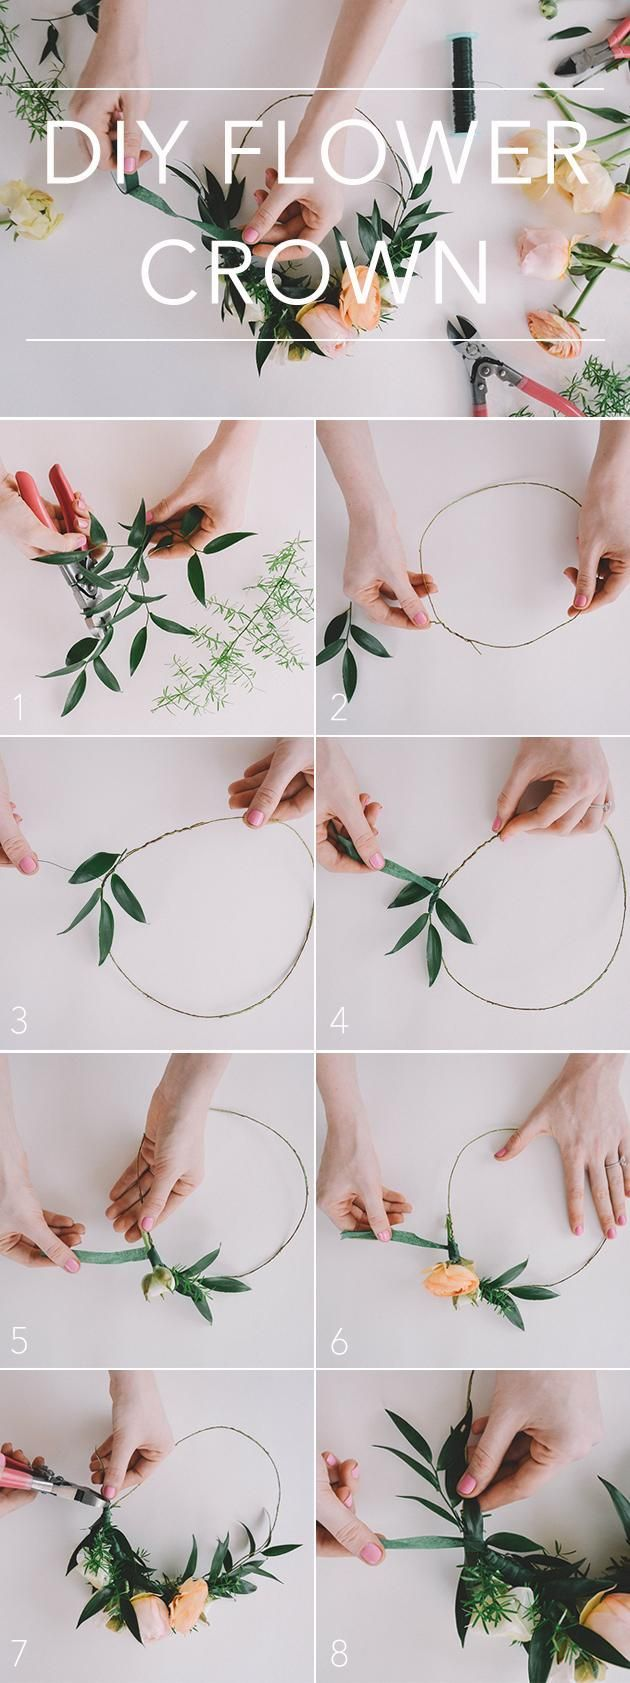 250 best flower crown images on pinterest crowns floral crowns how to diy a flower crown for your wedding day brides izmirmasajfo Choice Image